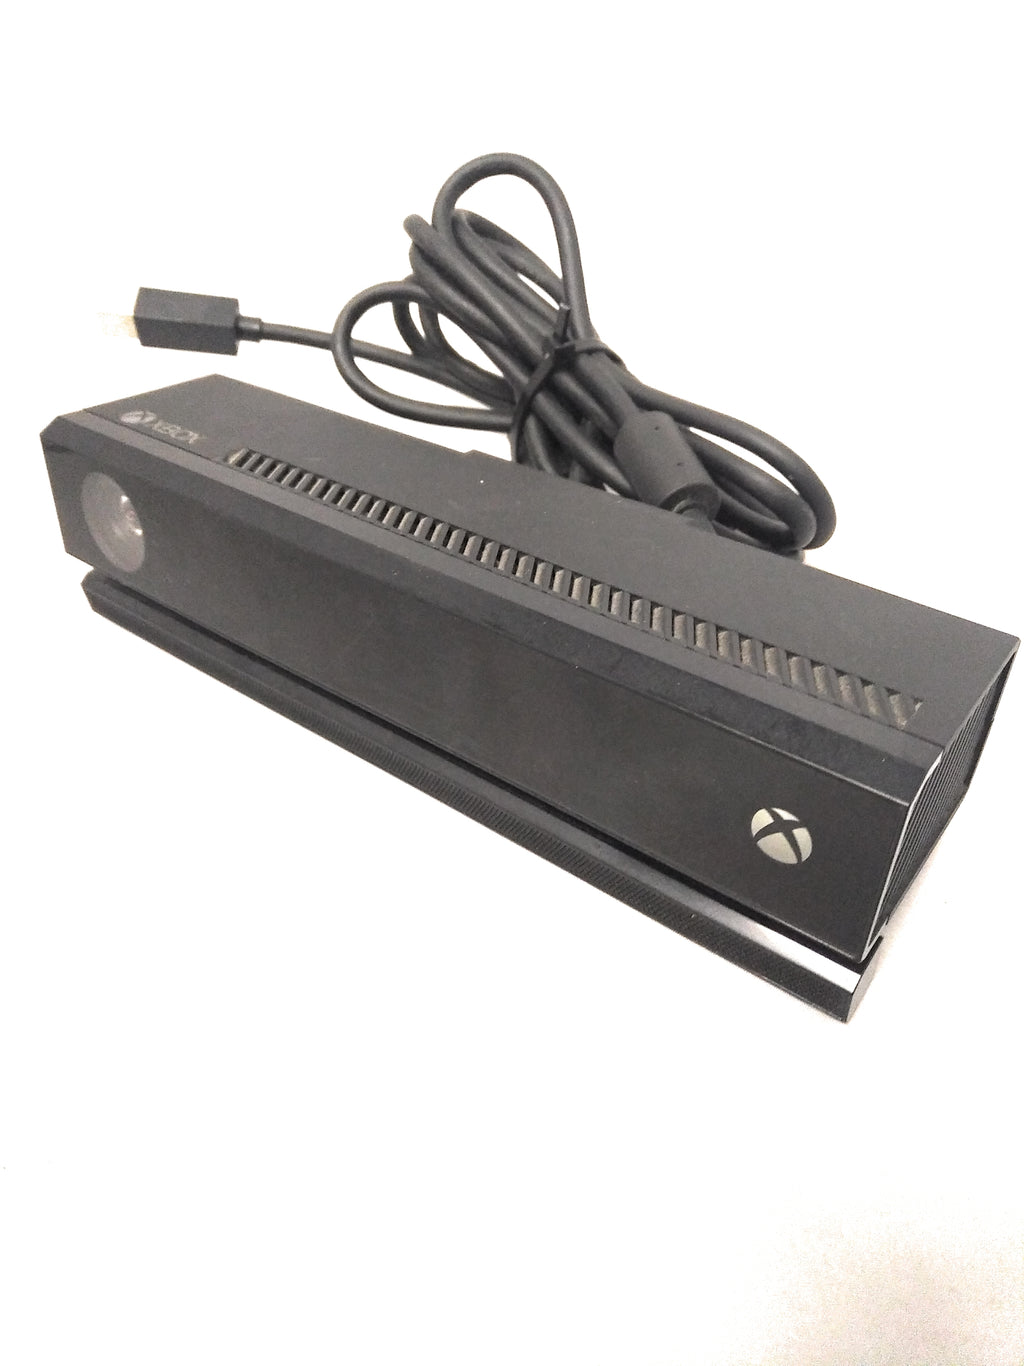 Official Microsoft Xbox One Kinect Motion Sensor UK PAL FREE P&P V2